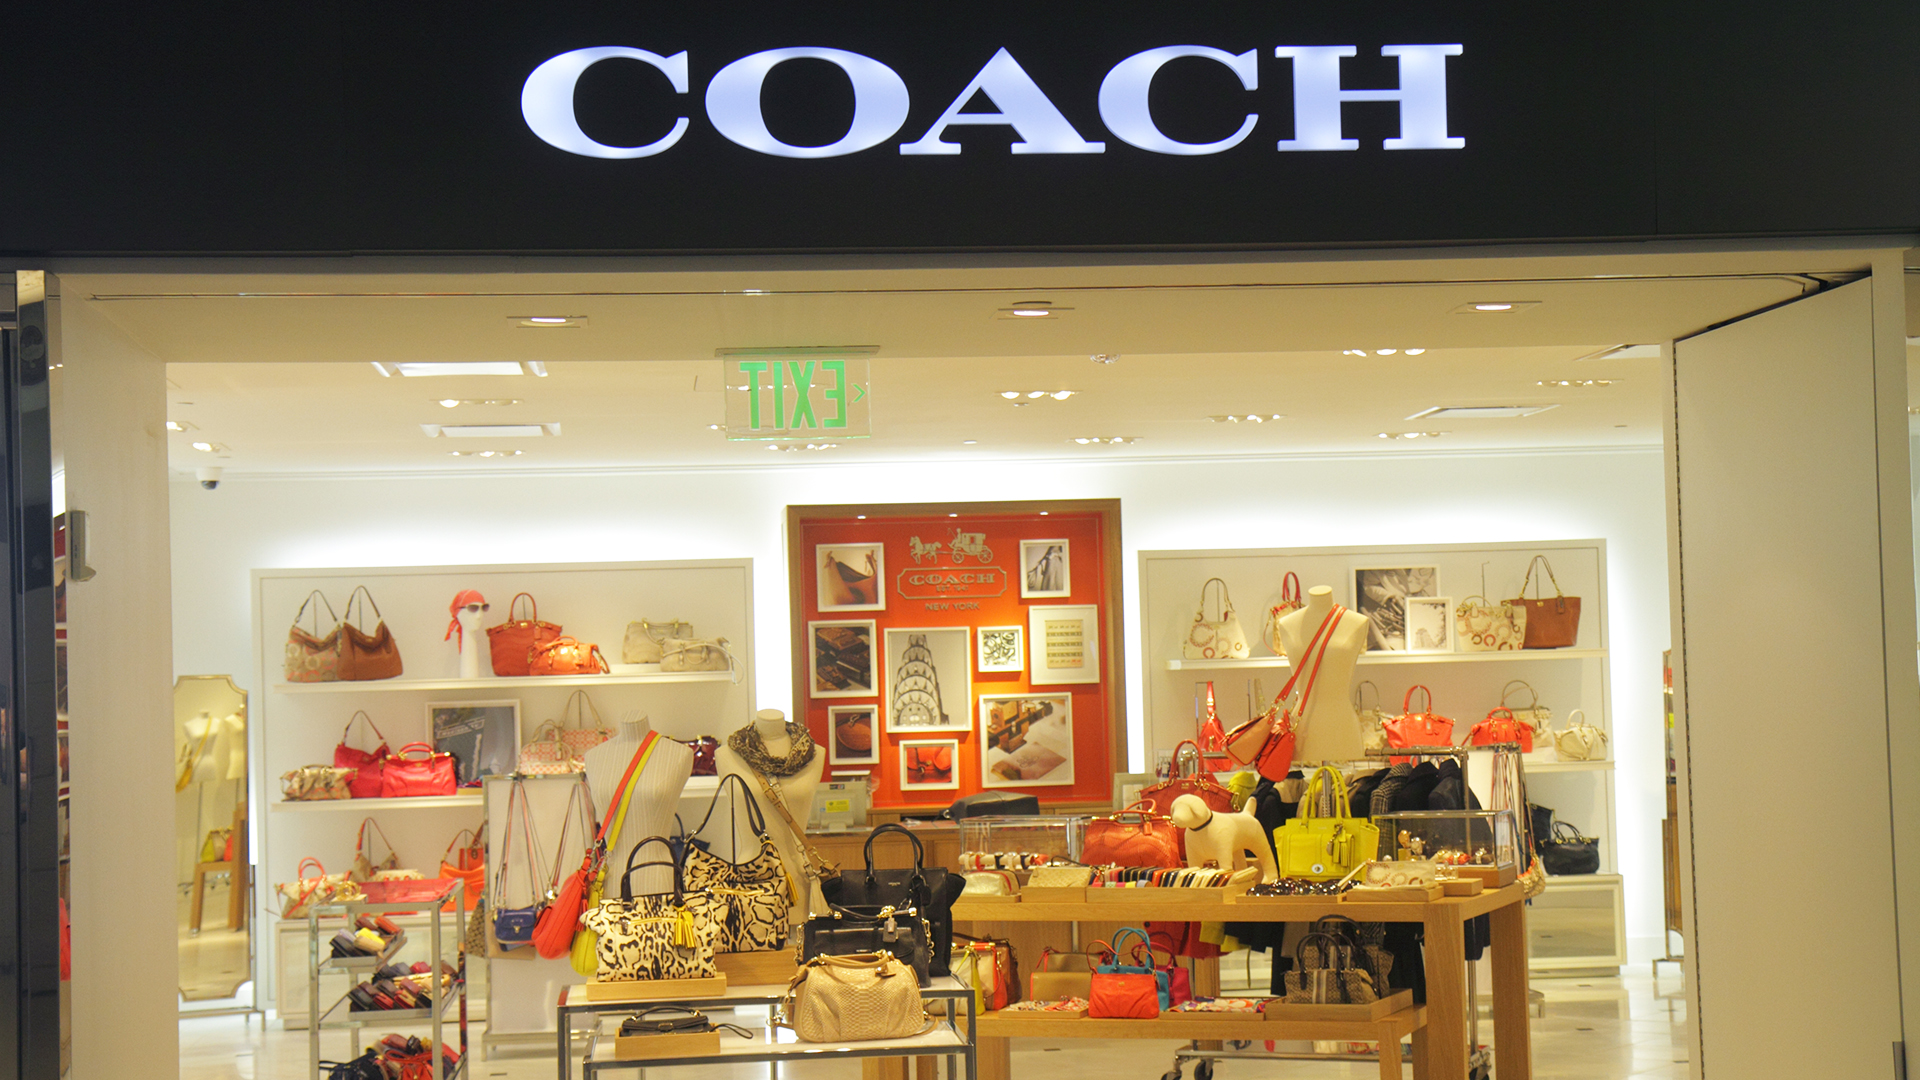 coach inc its strategy in the Coach halts long sales declines by going coach halts long sales declines by going upscale our strategy has been about the coach brand being aspirational.